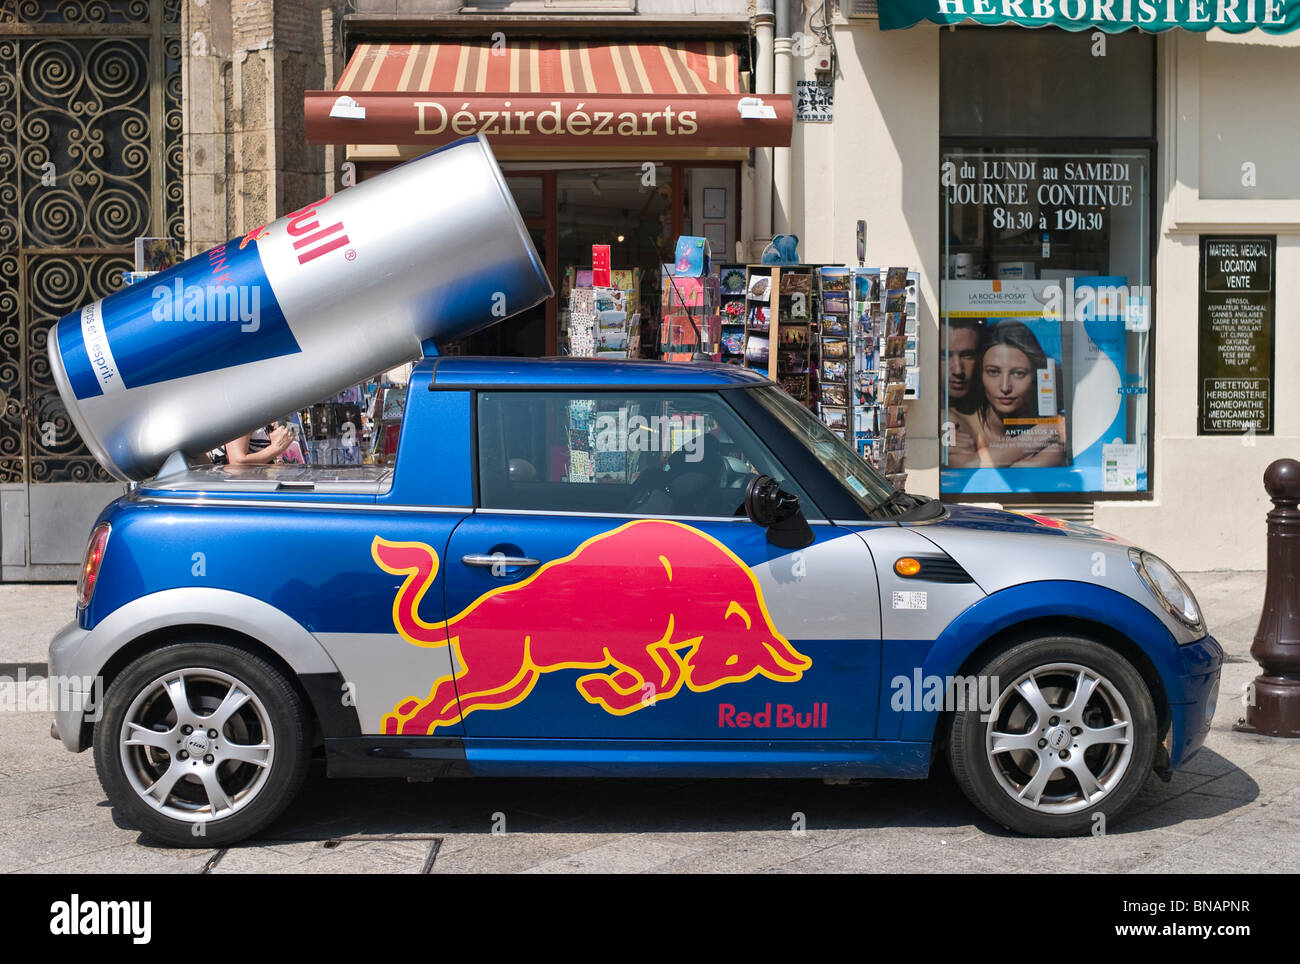 red bull promotions car nice france stock photo royalty free image 30355523 alamy. Black Bedroom Furniture Sets. Home Design Ideas